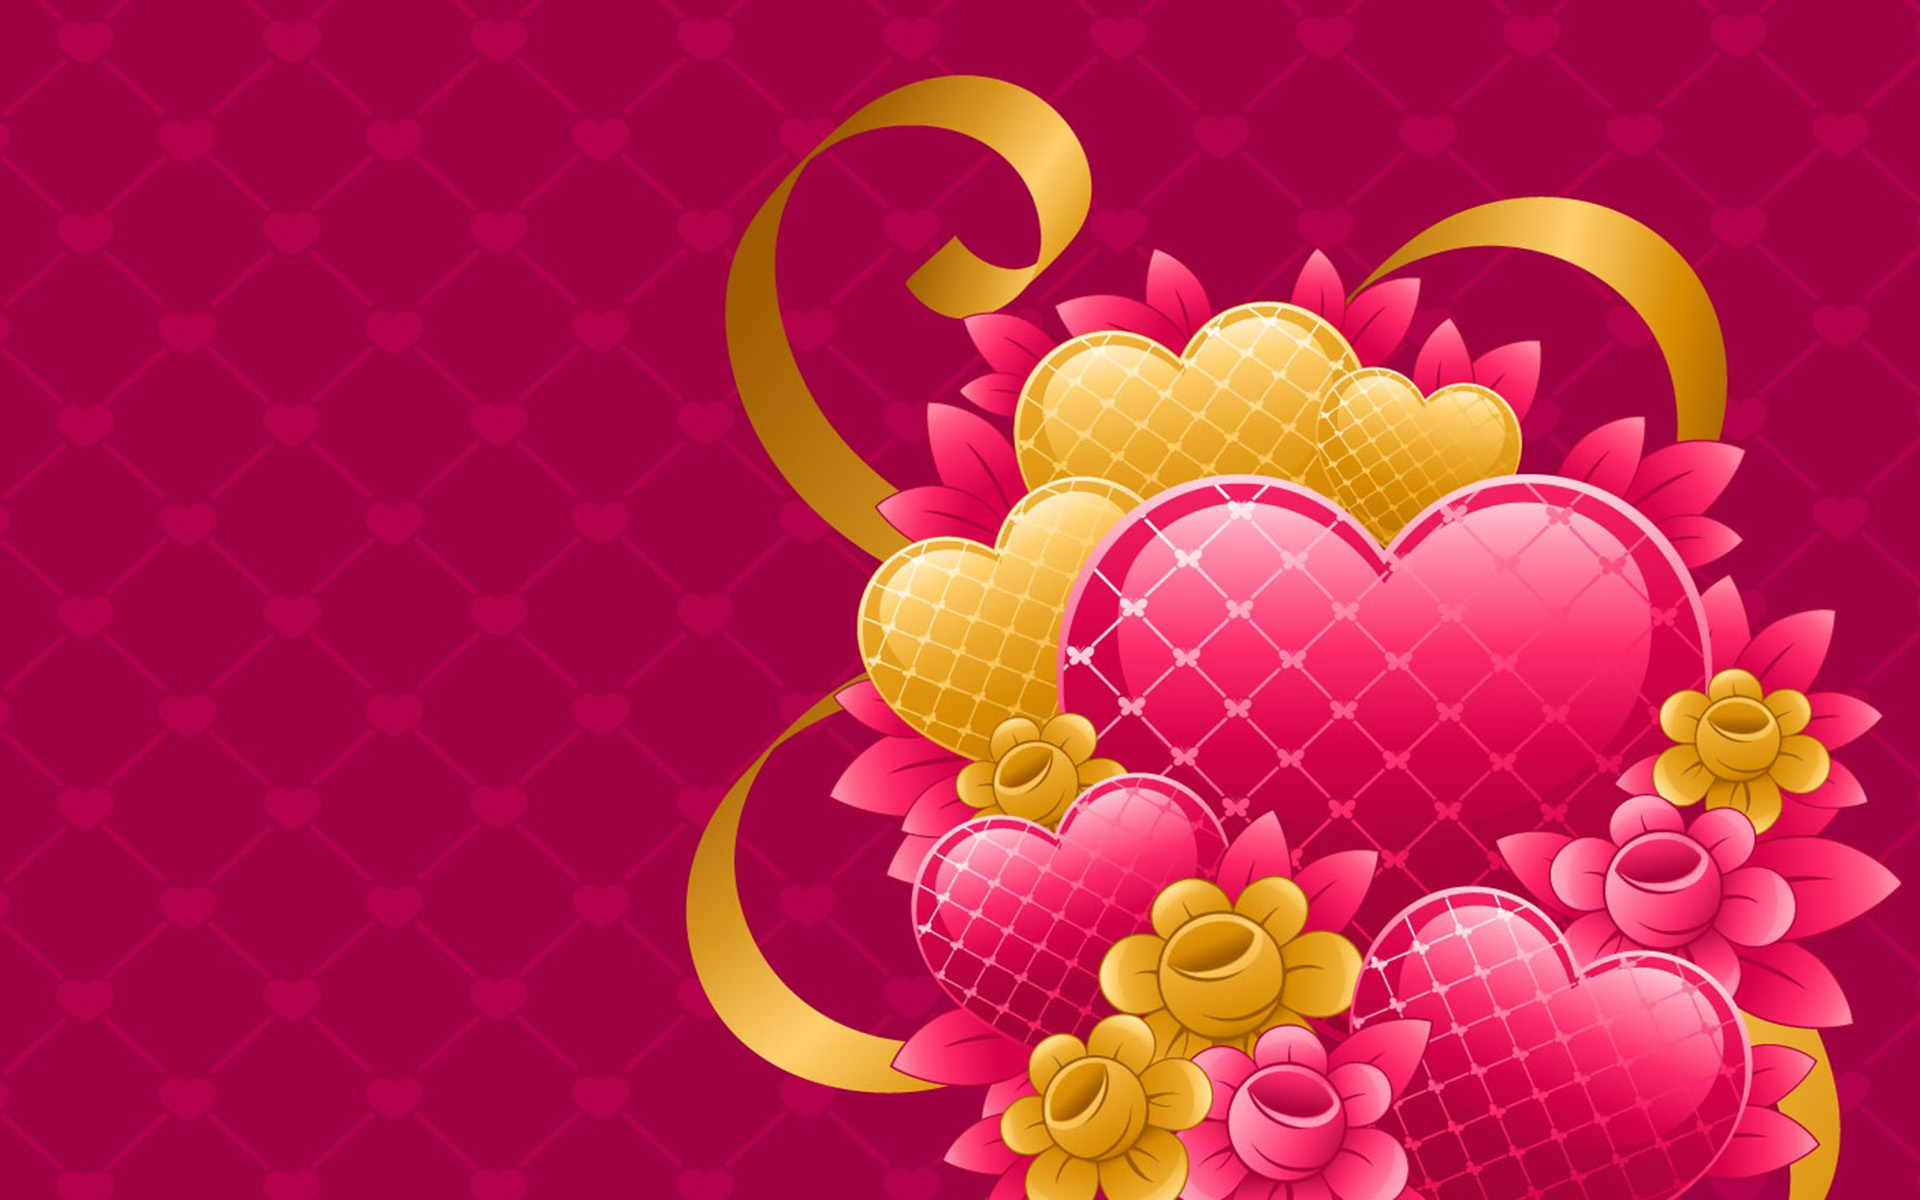 Love Hd Wallpapers Download (63 Wallpapers) Adorable Wallpapers